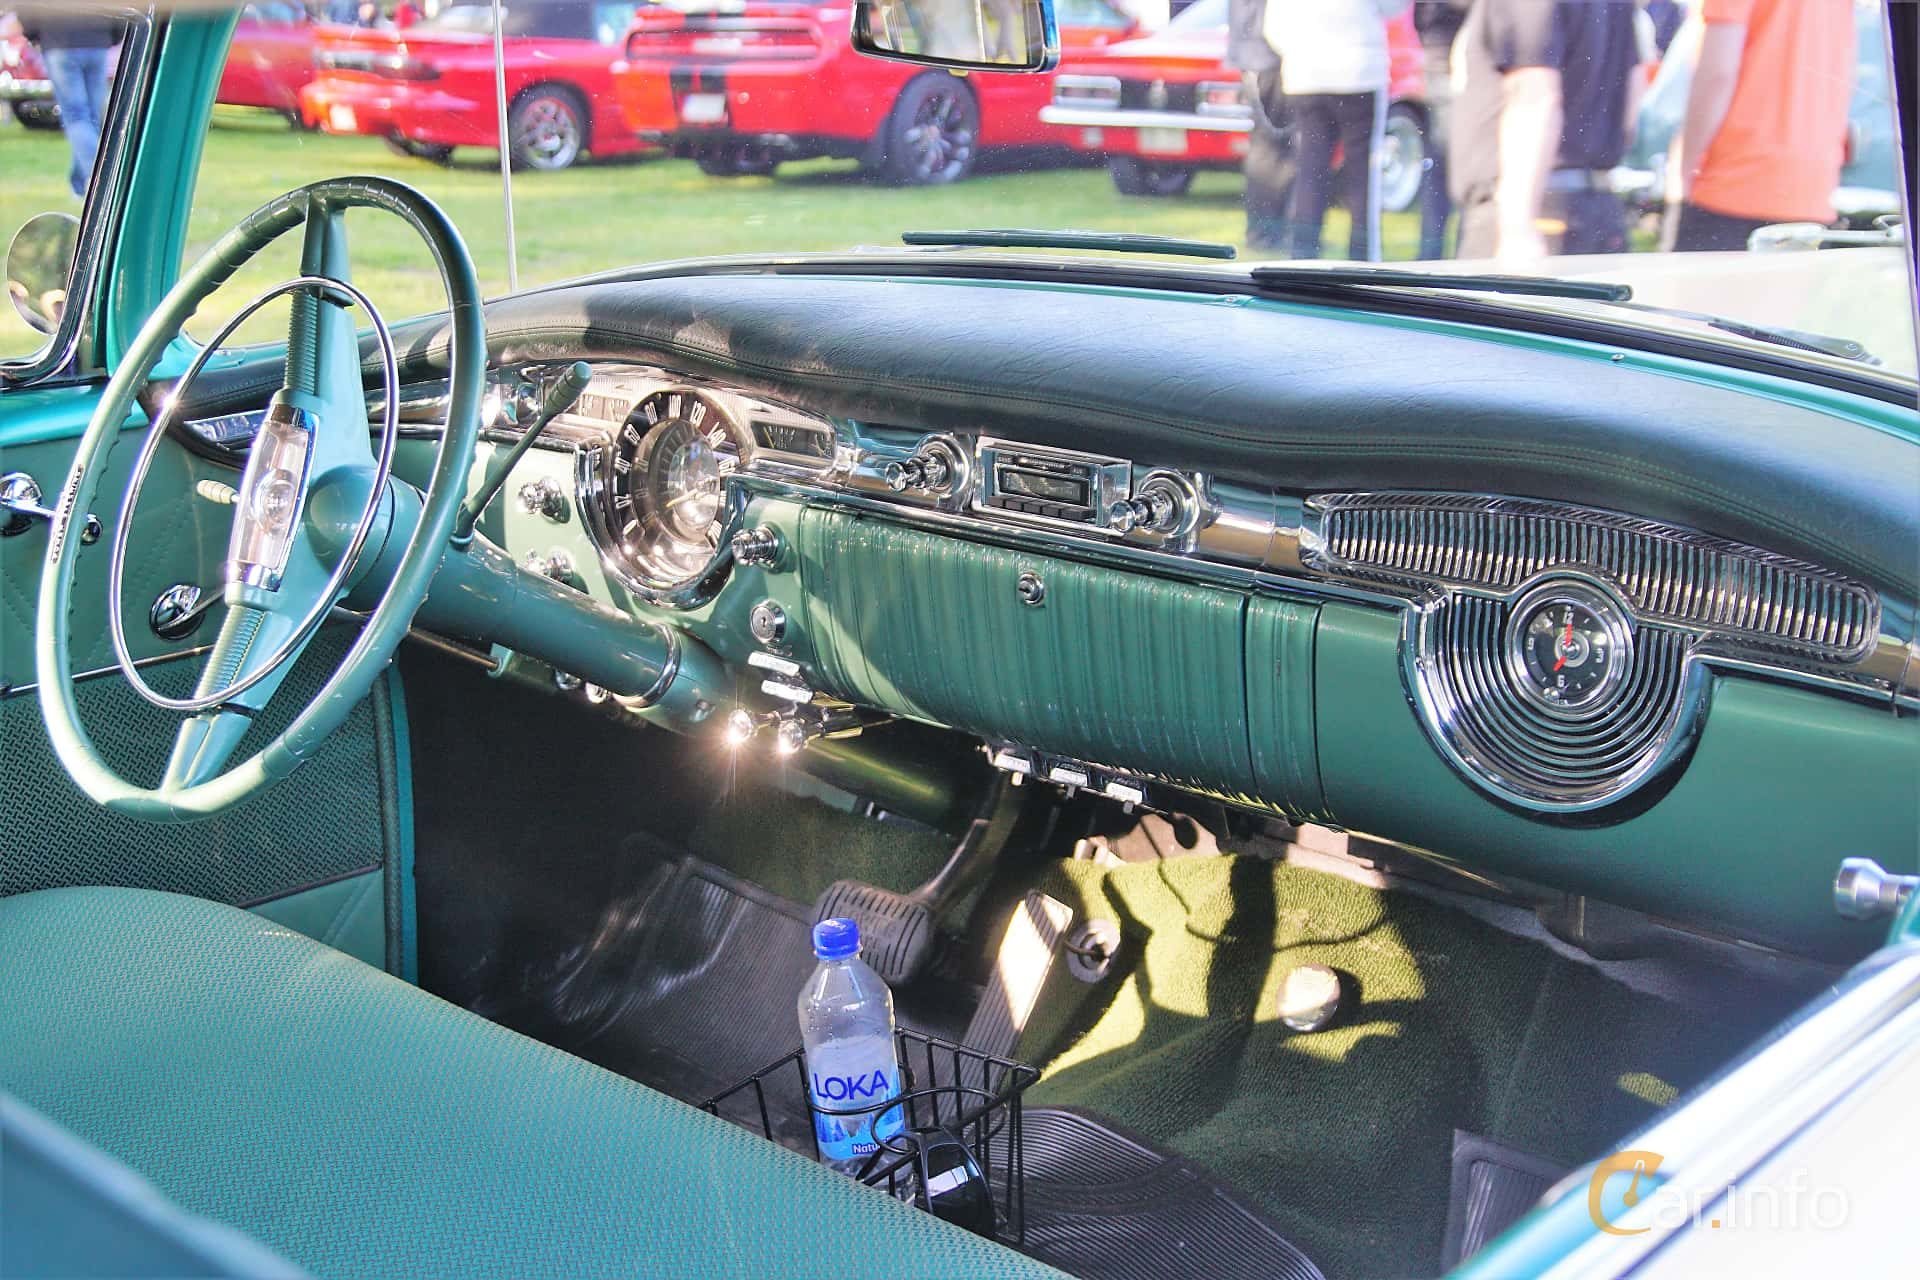 Interior of Oldsmobile Ninety-Eight Holiday Coupé 5.3 V8 Hydra-Matic, 188ps, 1954 at Onsdagsträffar på Gammlia Umeå 2019 vecka 28